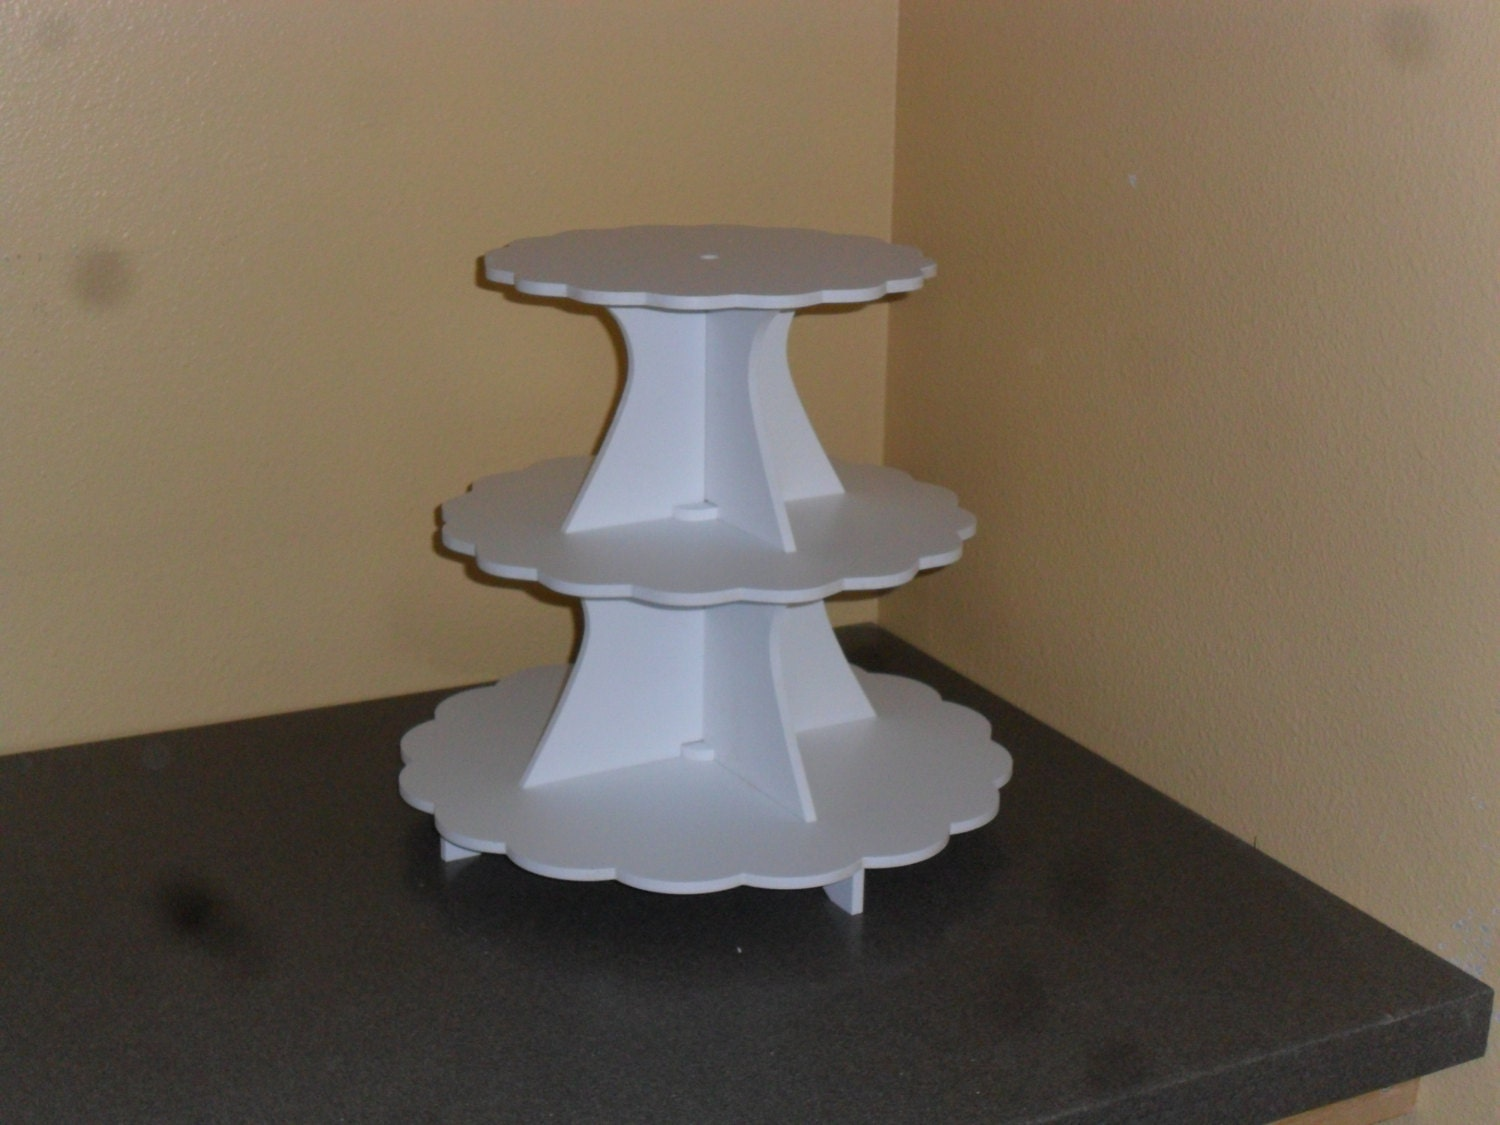 cupcake stand 3 tier scallop pvc 5 0 between tiers 11 13. Black Bedroom Furniture Sets. Home Design Ideas